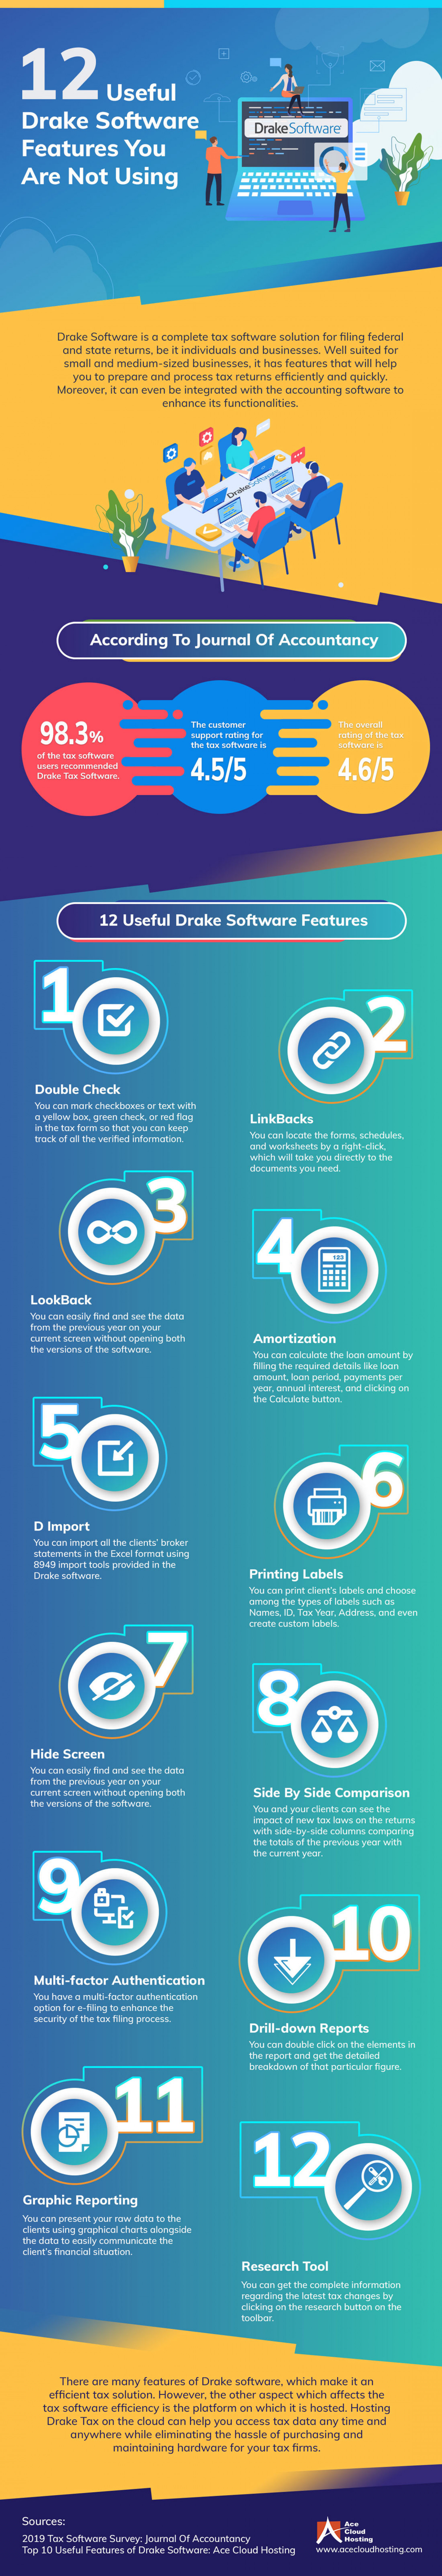 Top Features Of Drake Tax Software Infographic Infographic